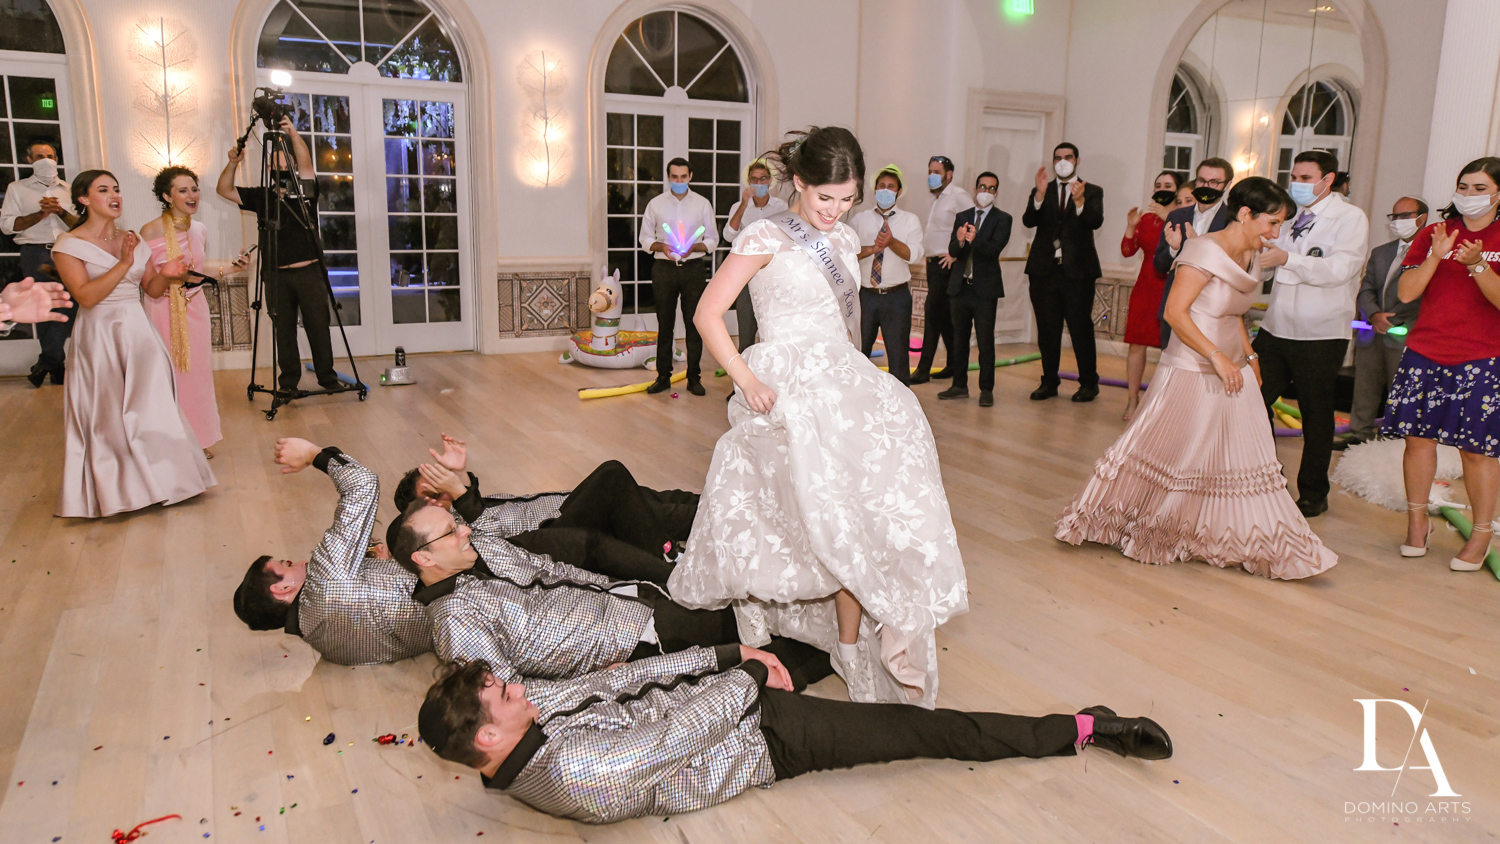 crazy fun bride party at Luxury Summer Wedding at The Colony Hotel Palm Beach by Domino Arts Photography